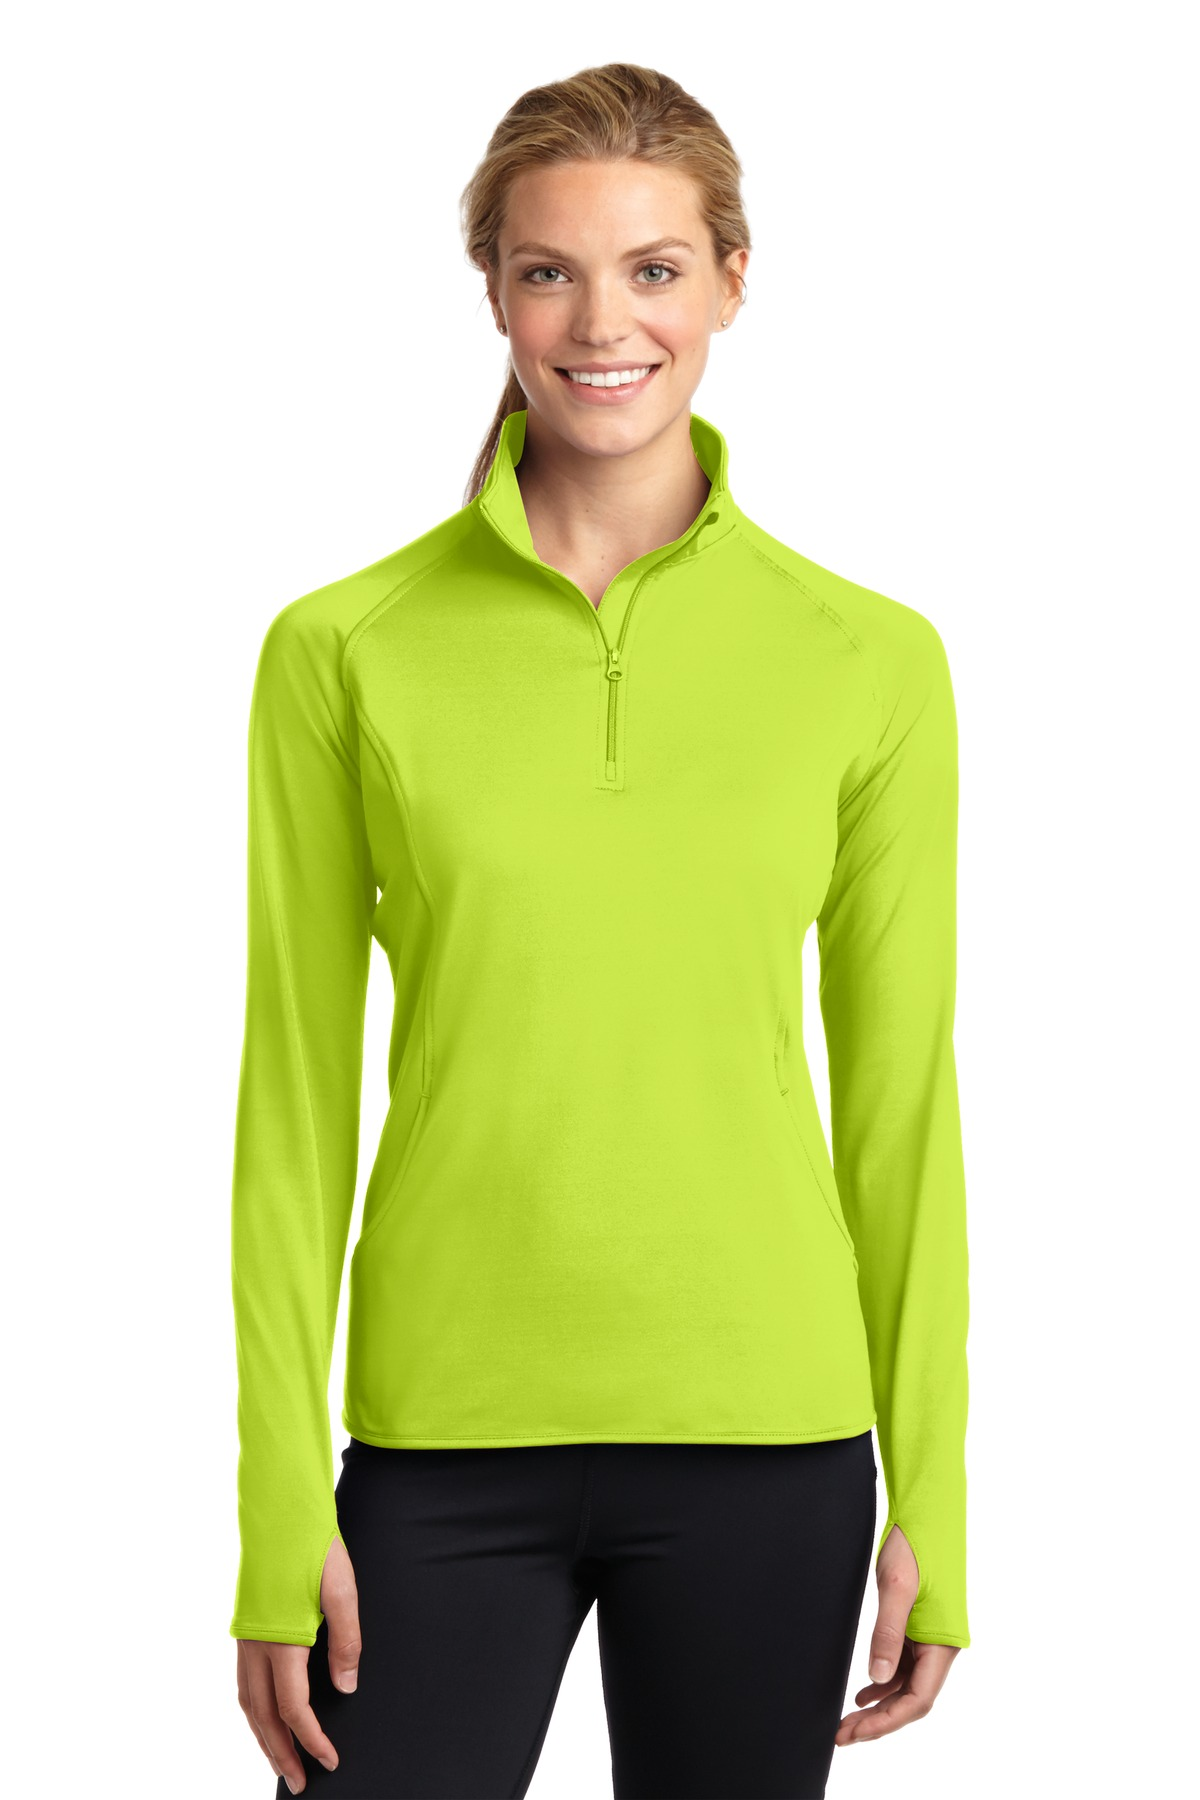 Sport-Tek ®  Ladies Sport-Wick ®  Stretch 1/2-Zip Pullover. LST850 - Charge Green